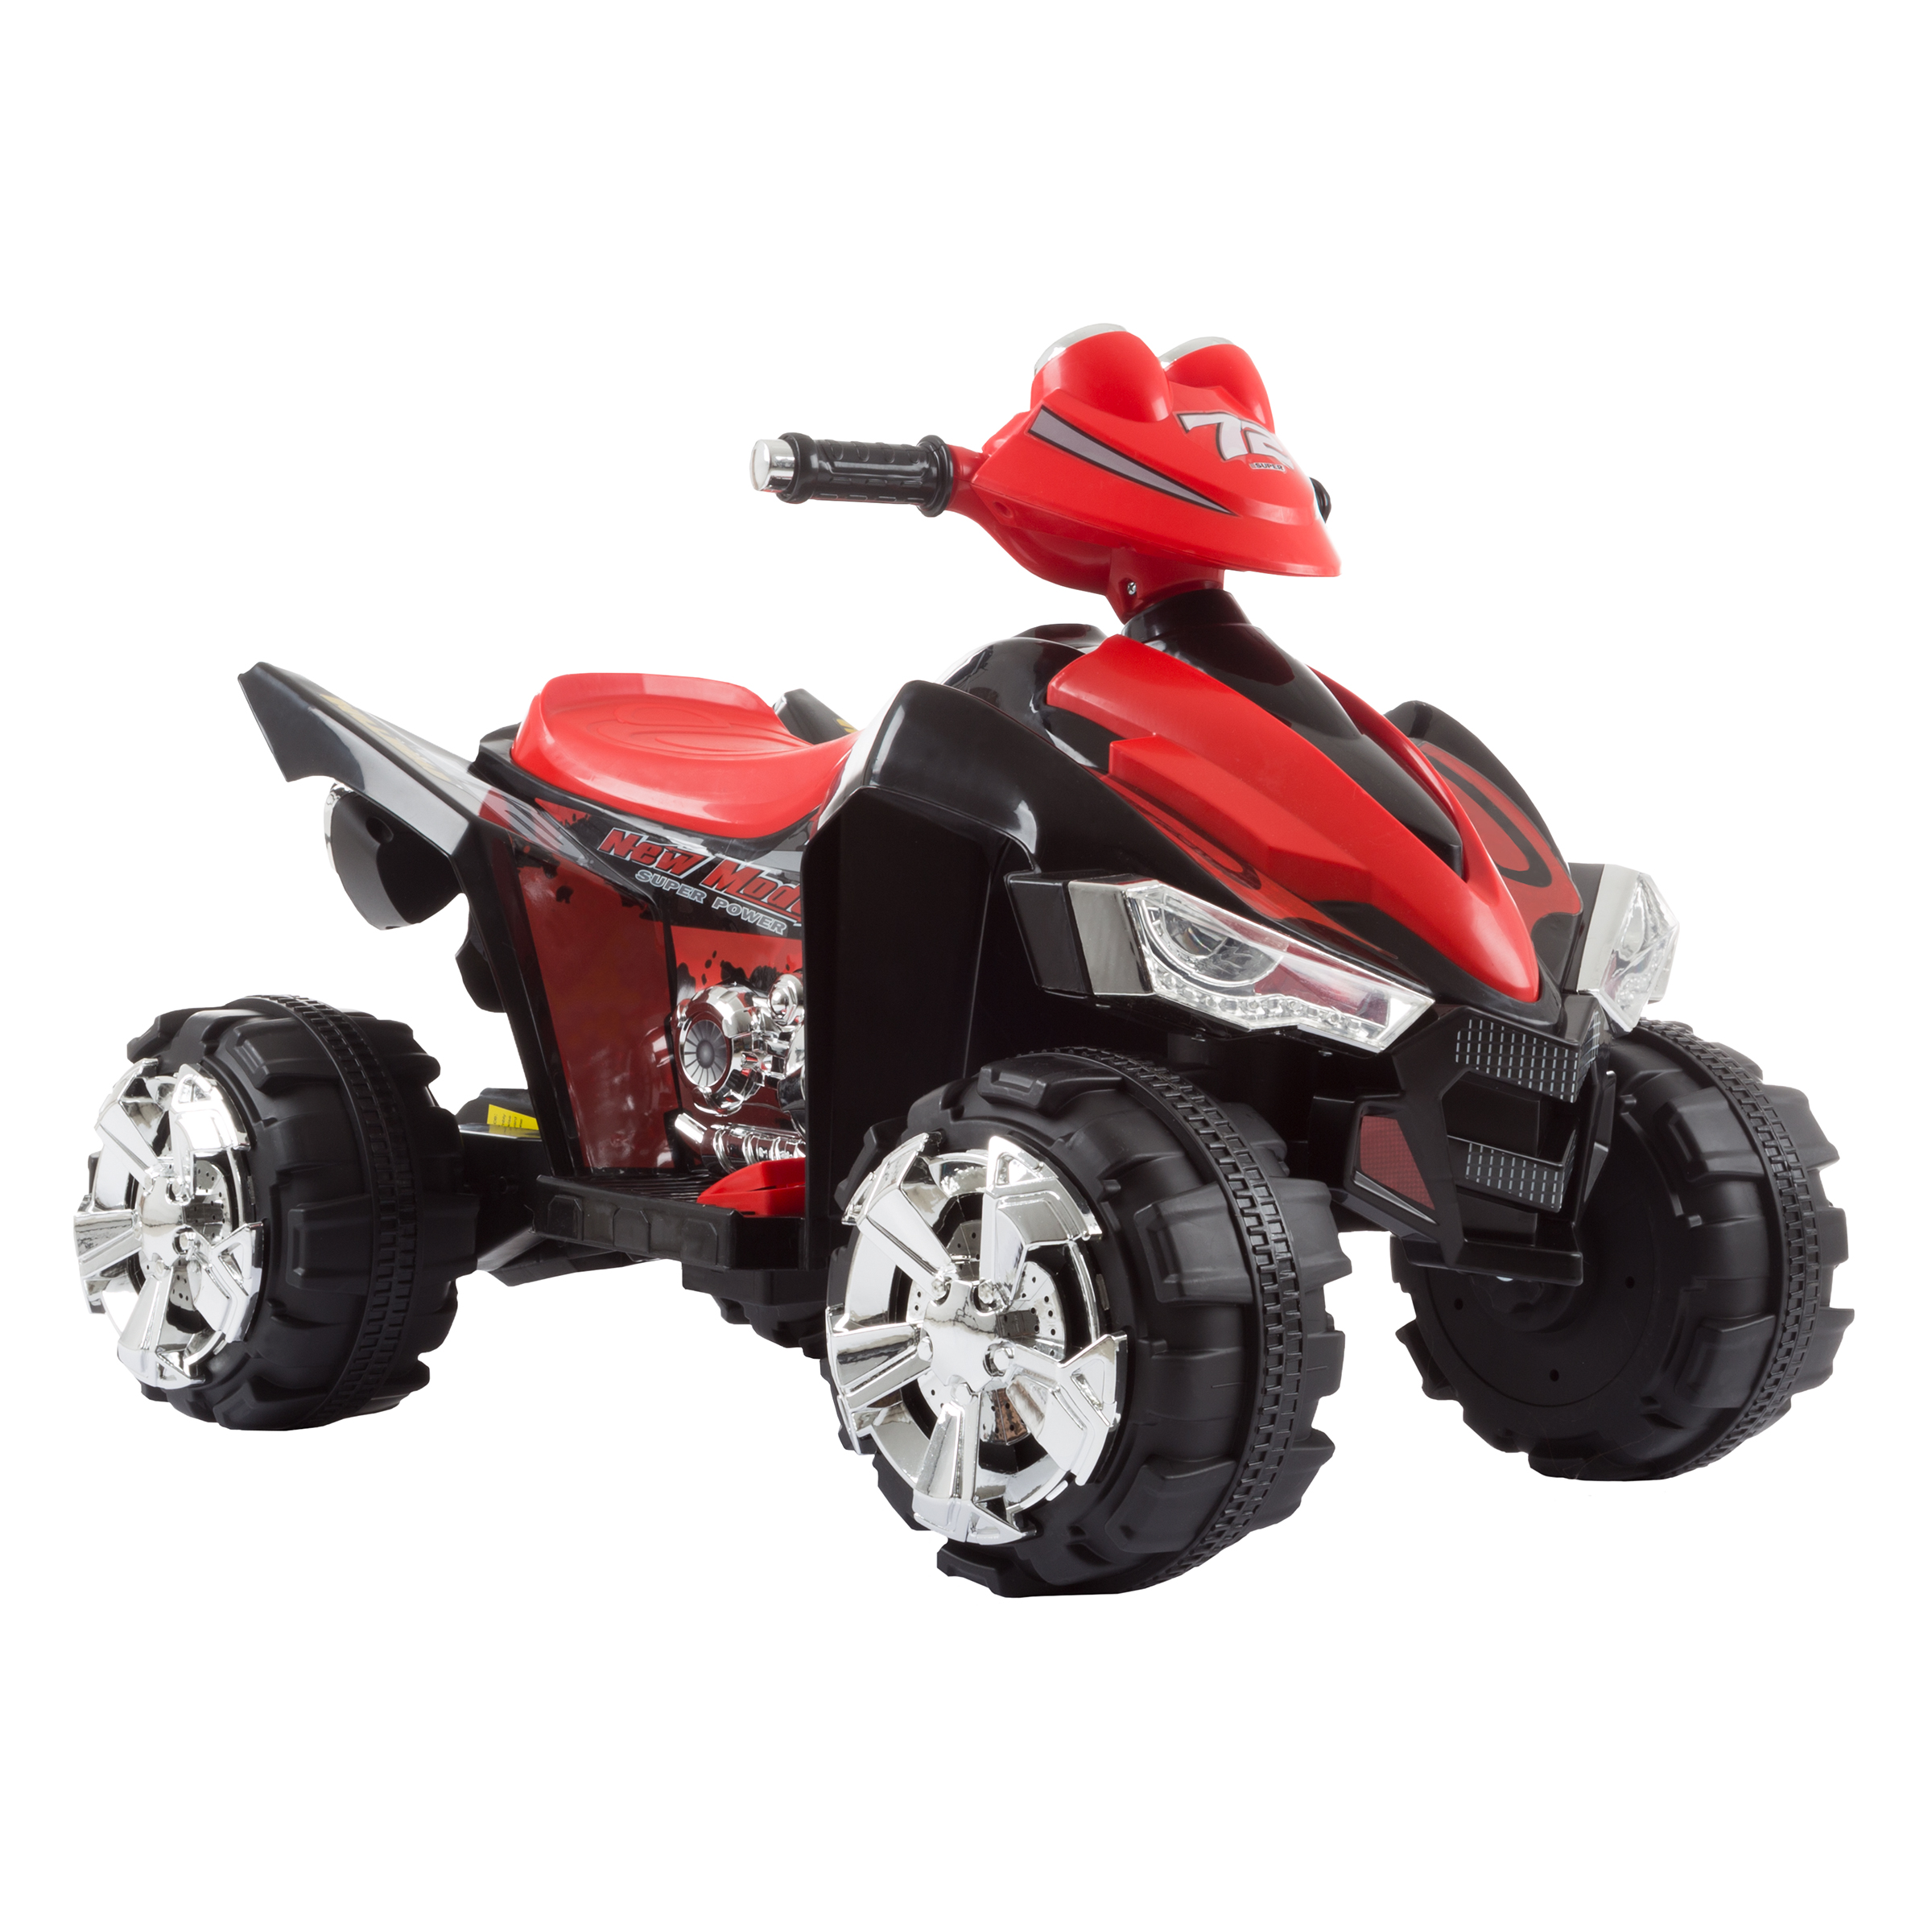 Ride On Toy Quad, Battery Powered Ride On Toy ATV Four Wheeler With Sound Effects by LilÂ' Rider– Toys for Boys and Girls, 2 - 5 Year Olds (Black/Red)